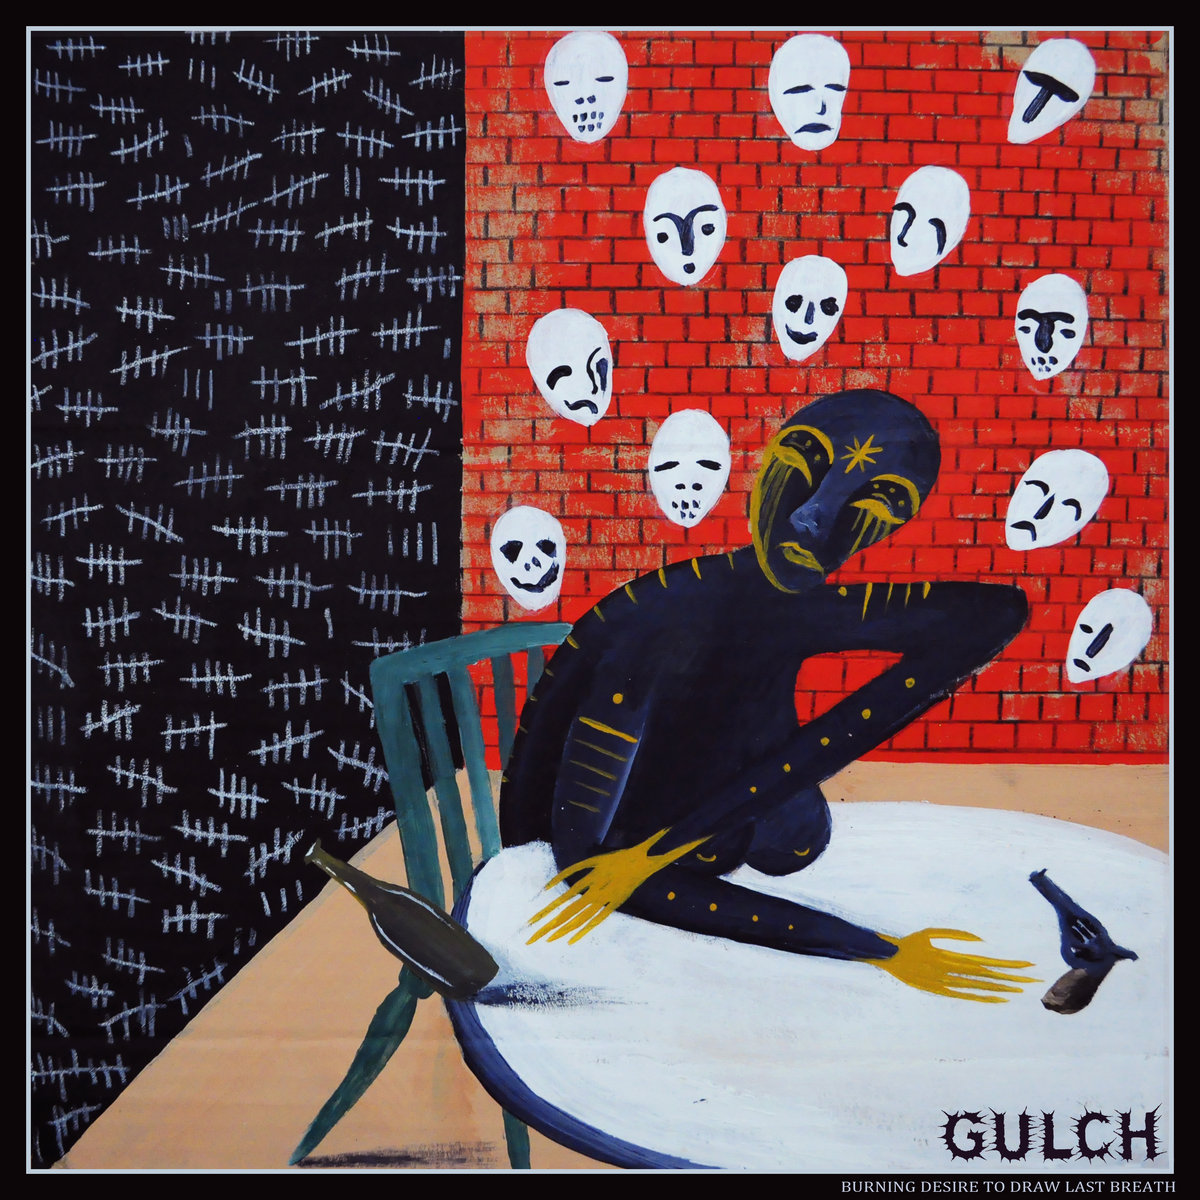 Gulch - Burning Desire To Draw Last Breath 10